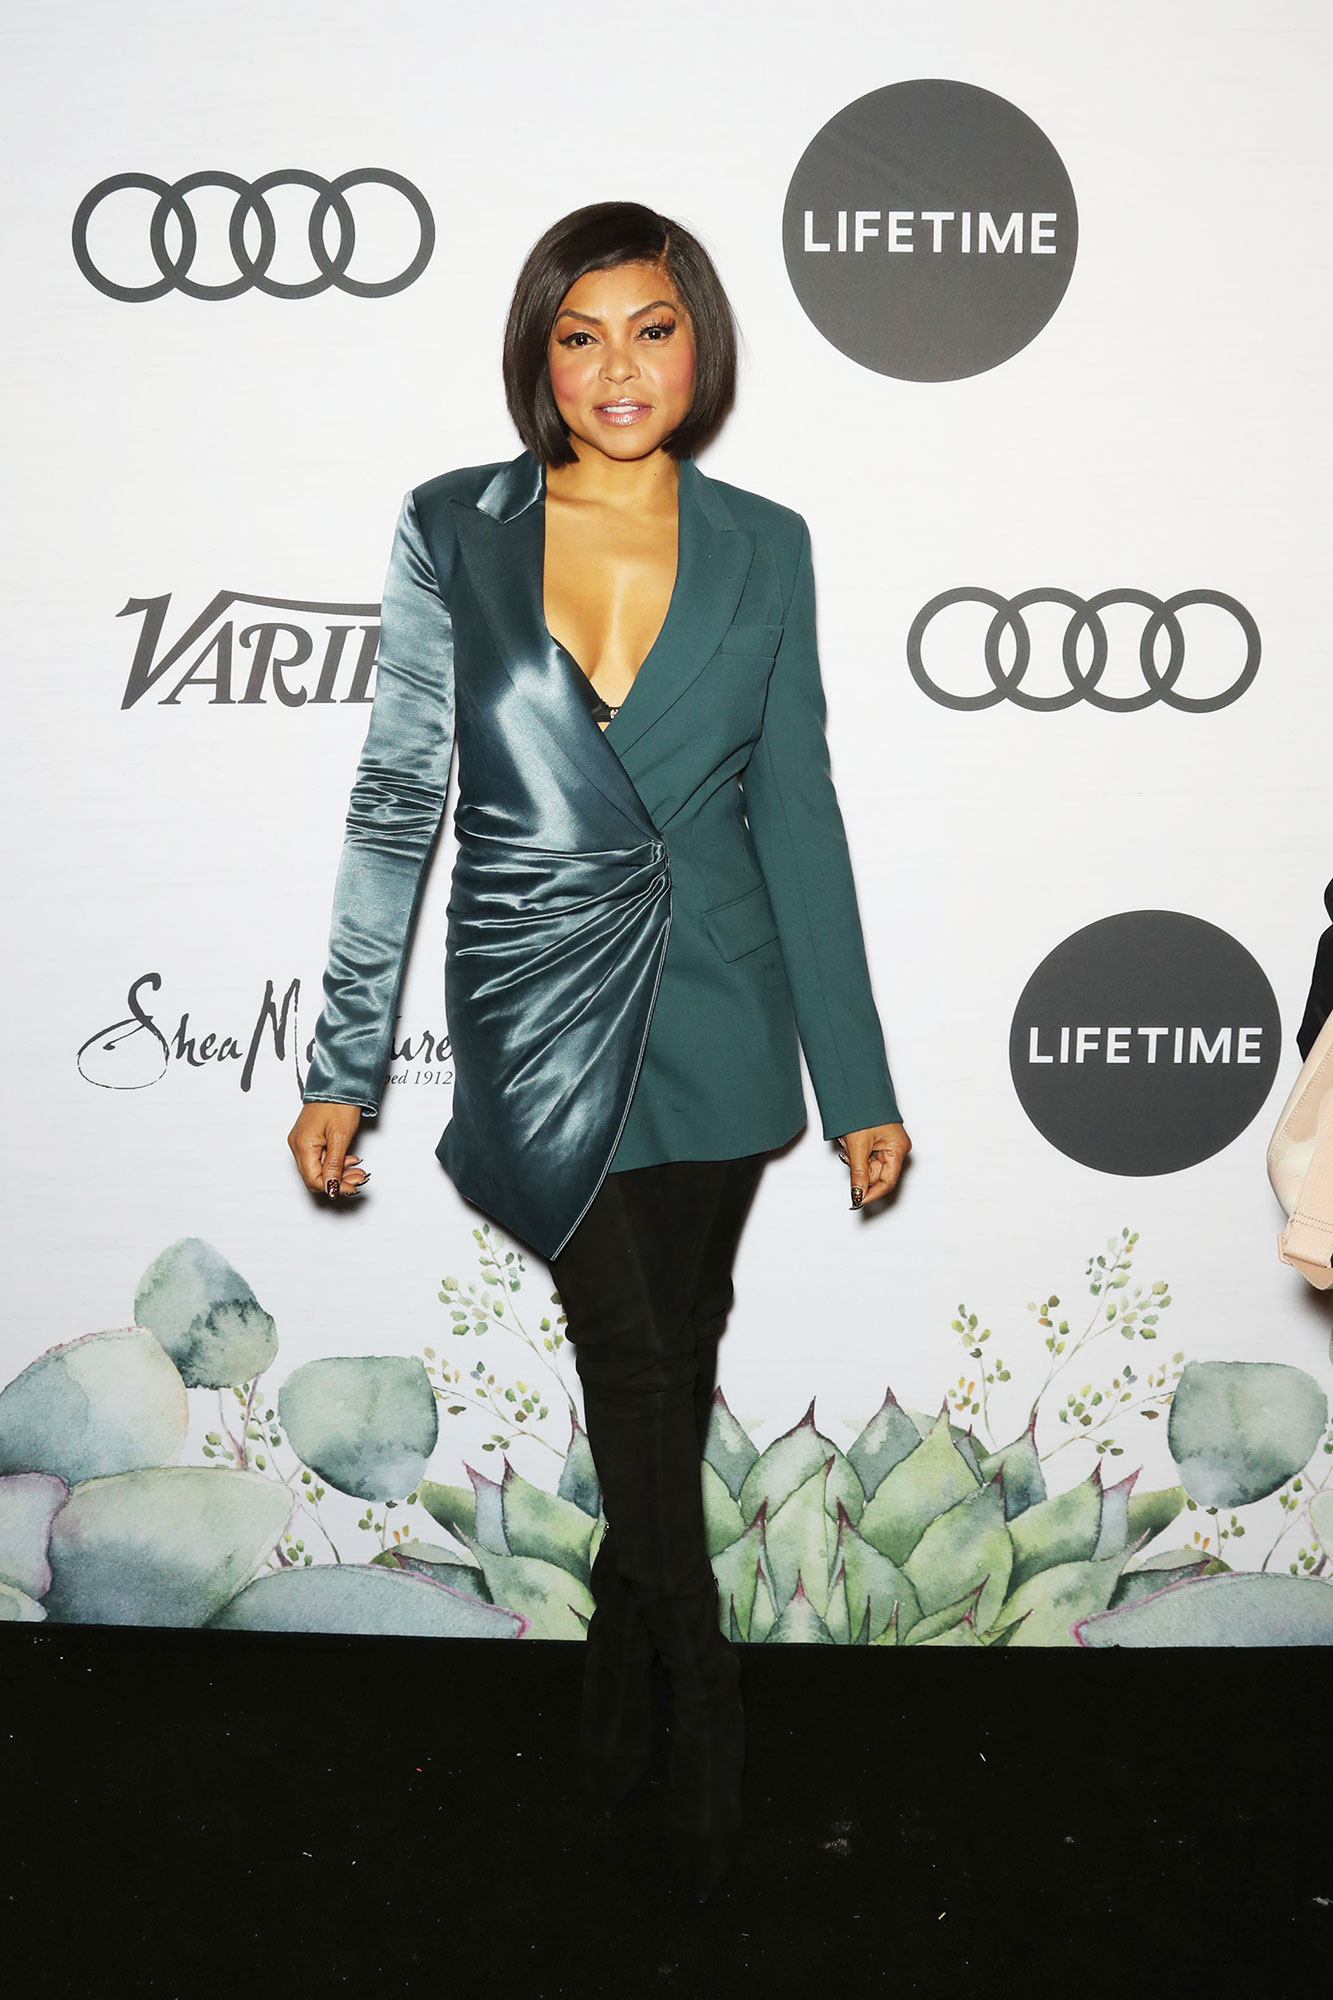 Taraji P. Henson Variety's Power of Women - The Empire star stunned in a two toned teal blazer with black pants.